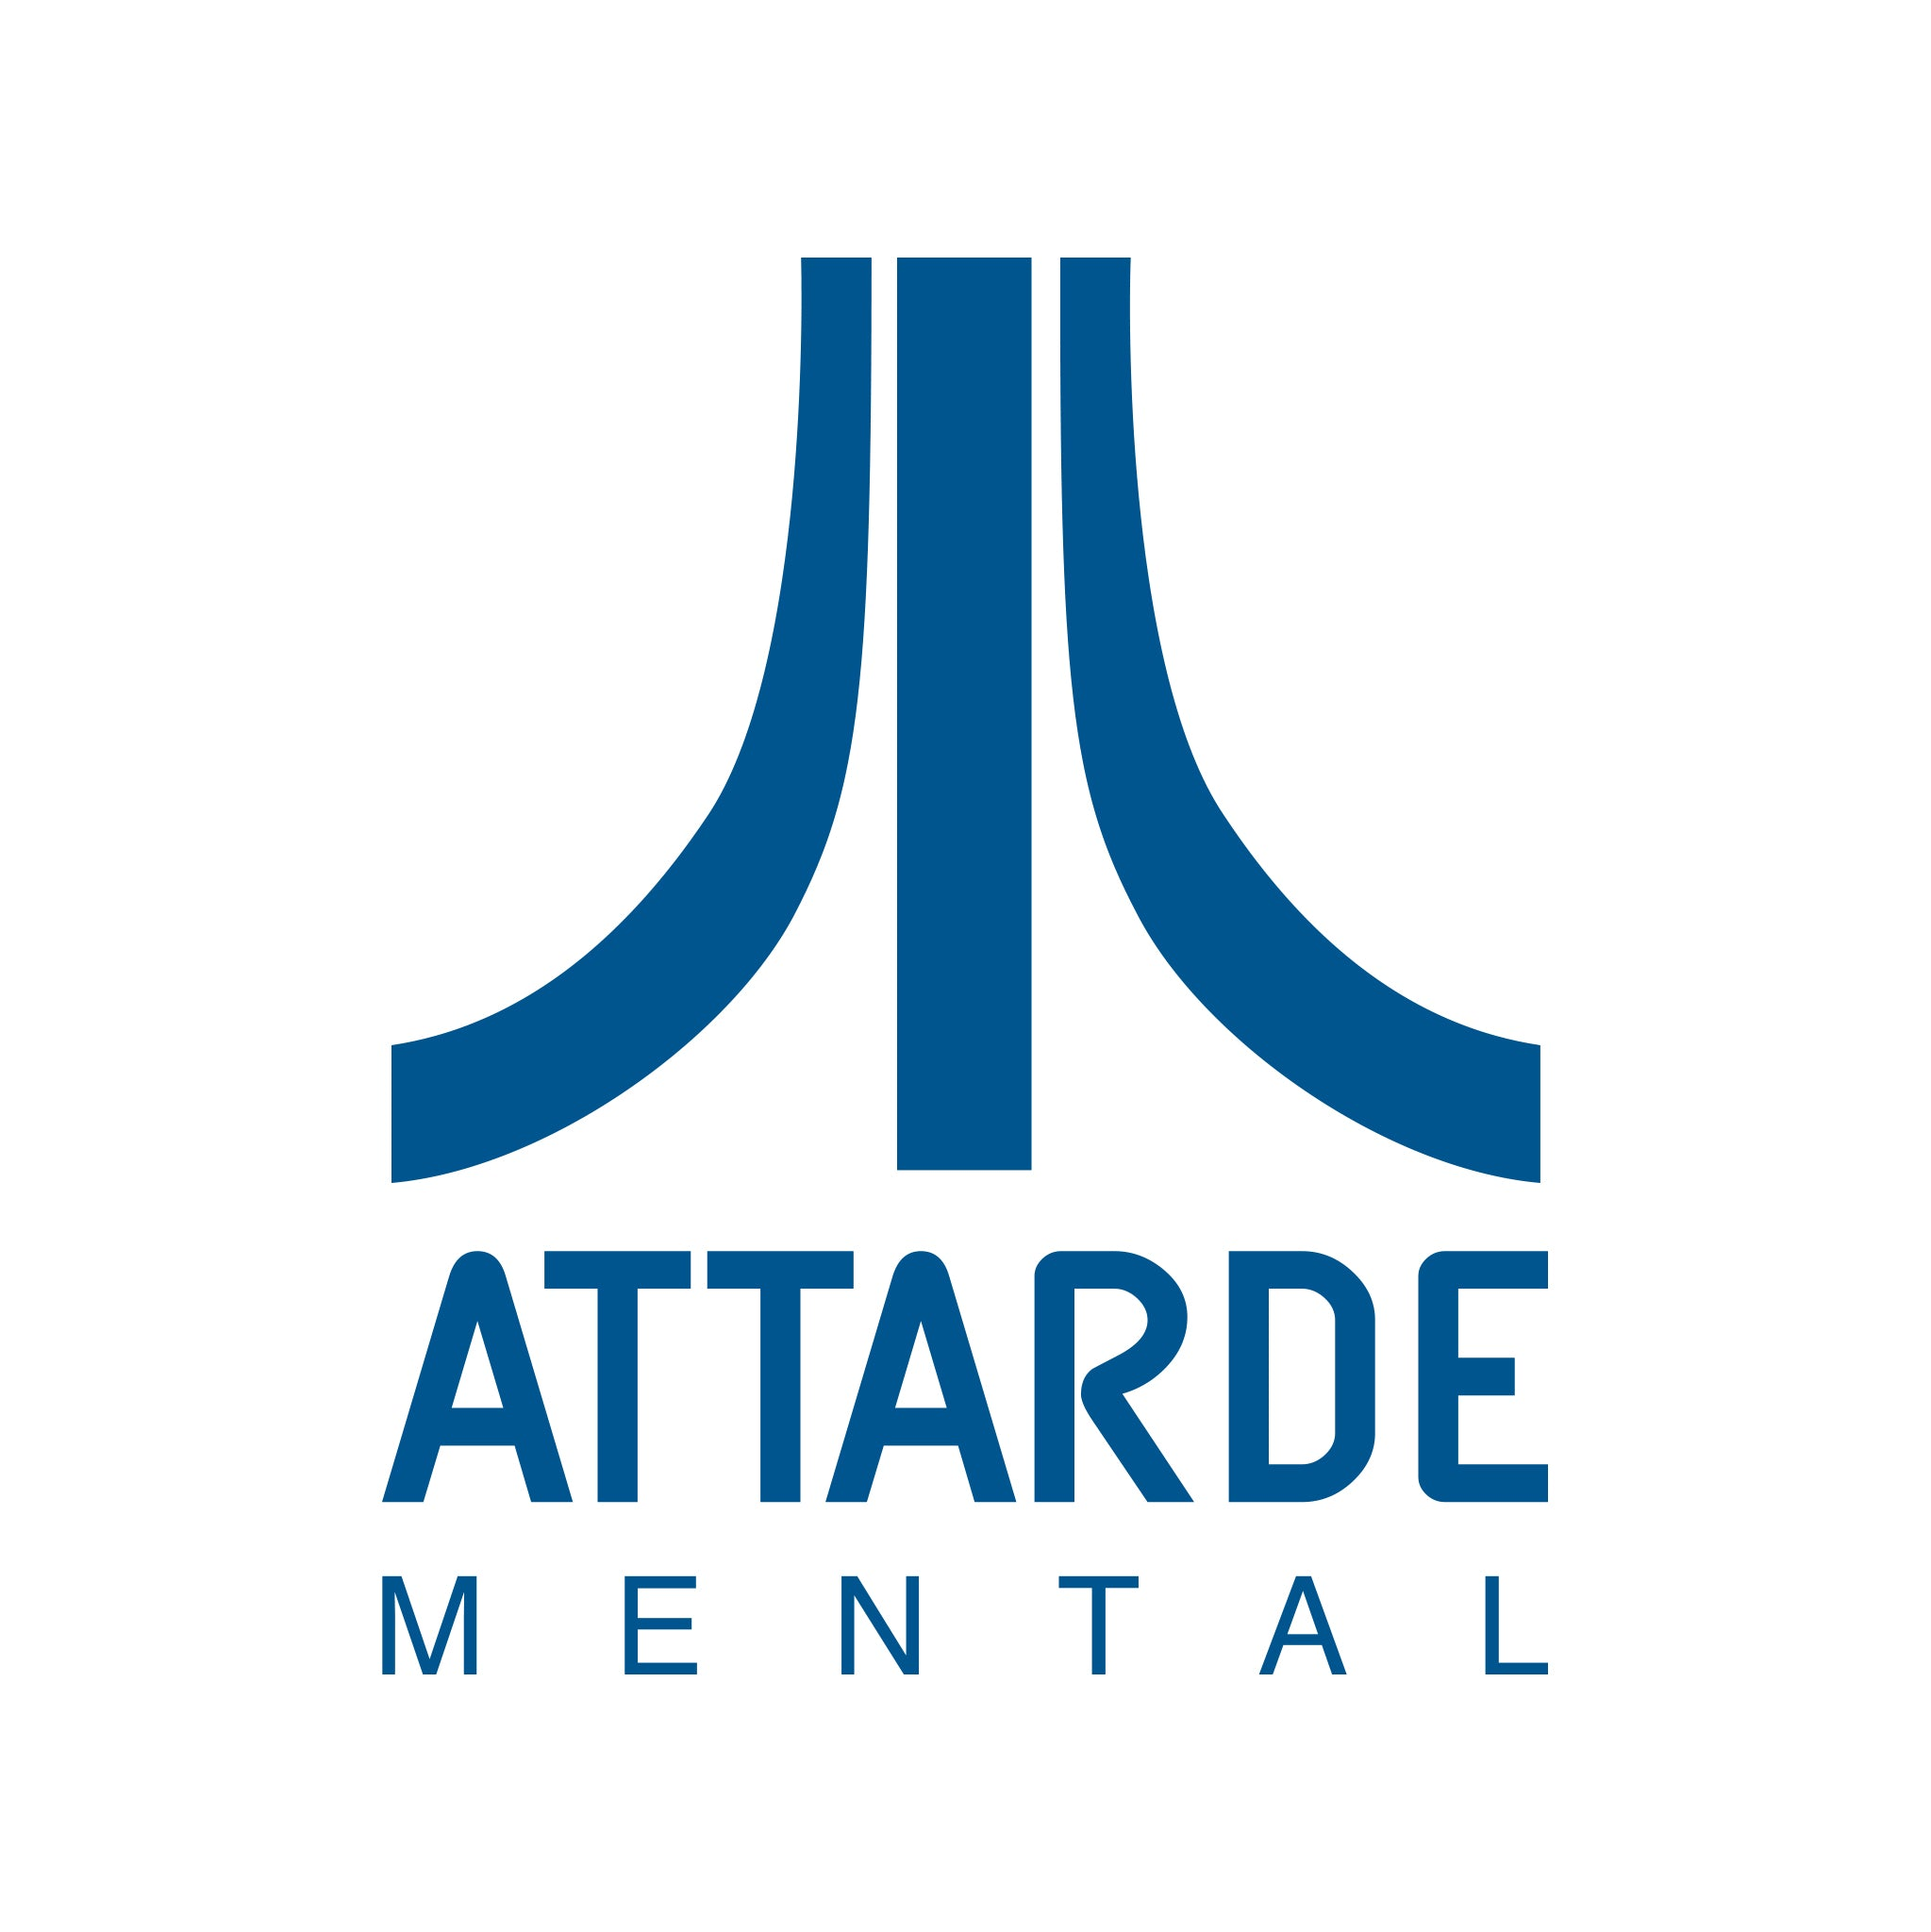 Attarde mental